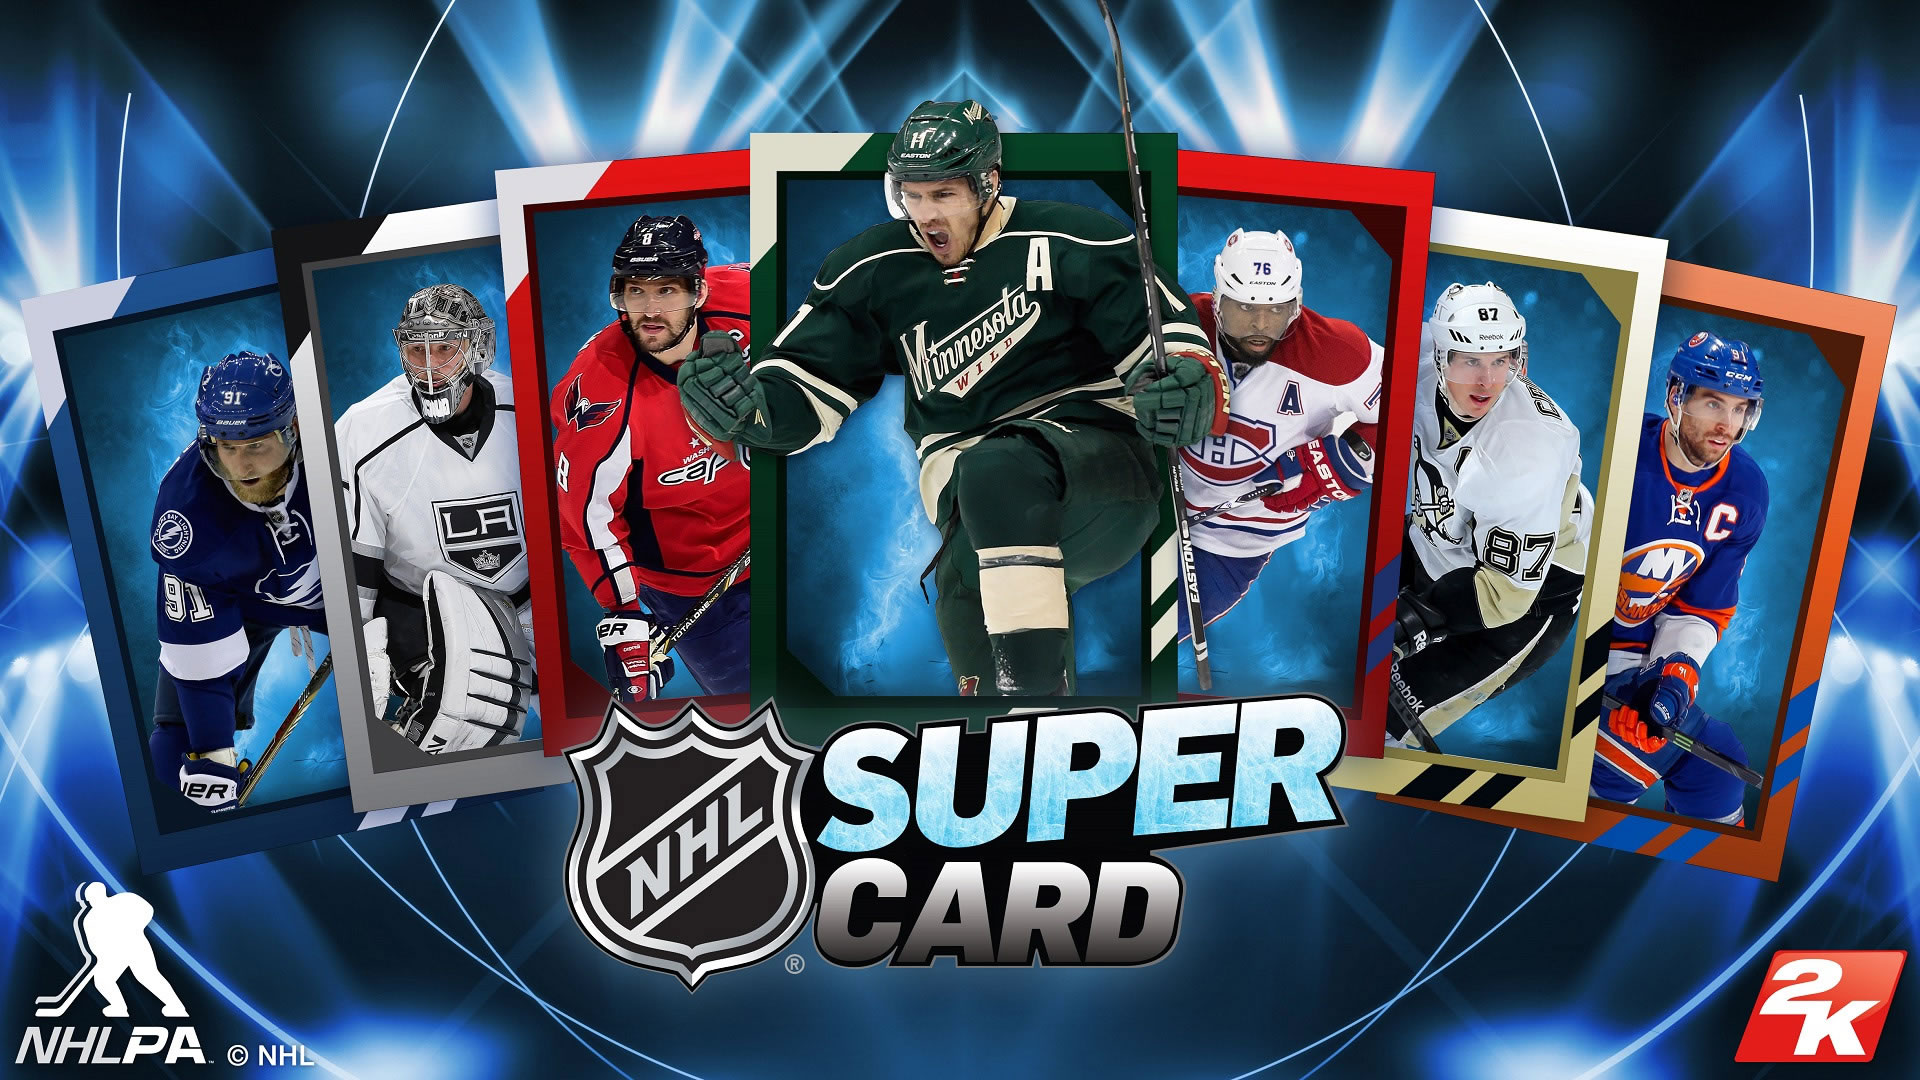 NHL SuperCard 2K18 is 2K's latest take on their SuperCard